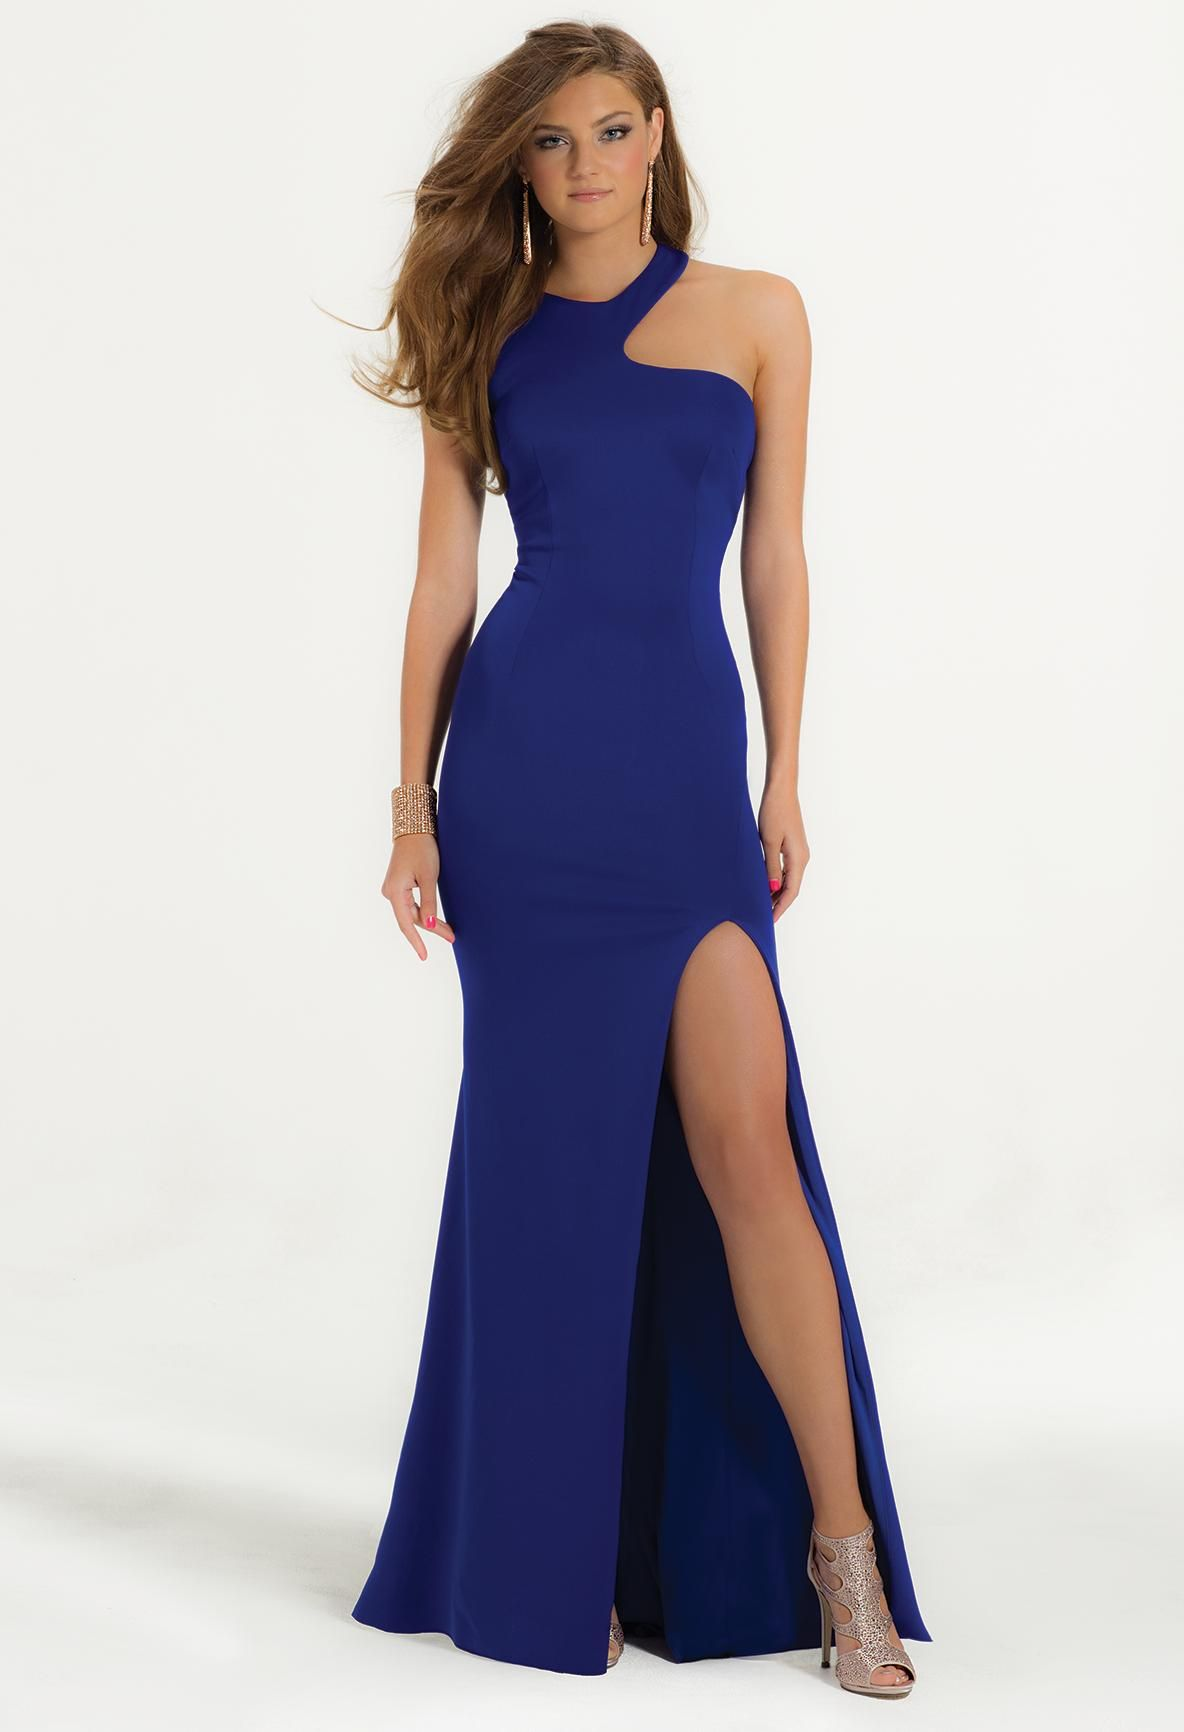 Asymetrical neckline and high slit Prom Dress  #camillelavie #CLVprom